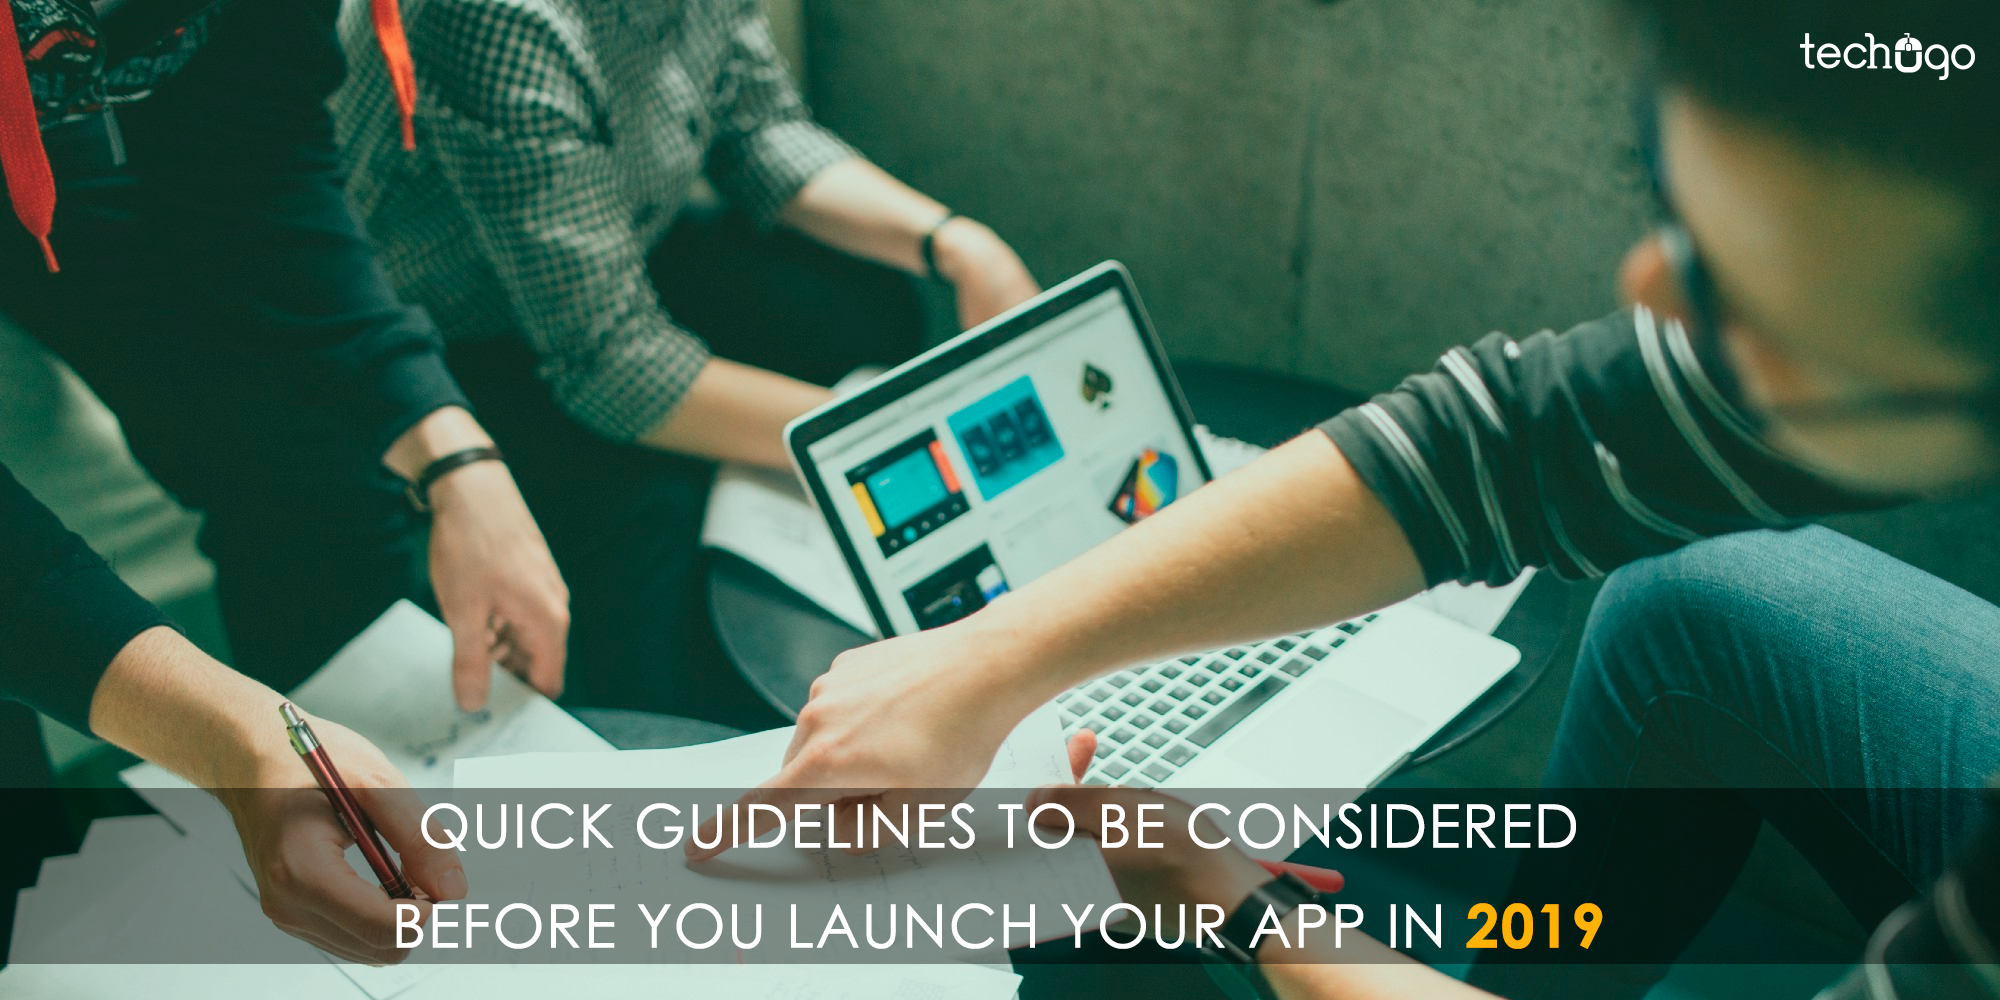 :  Quick Guidelines To Be Considered Before You Launch Your App In 2019